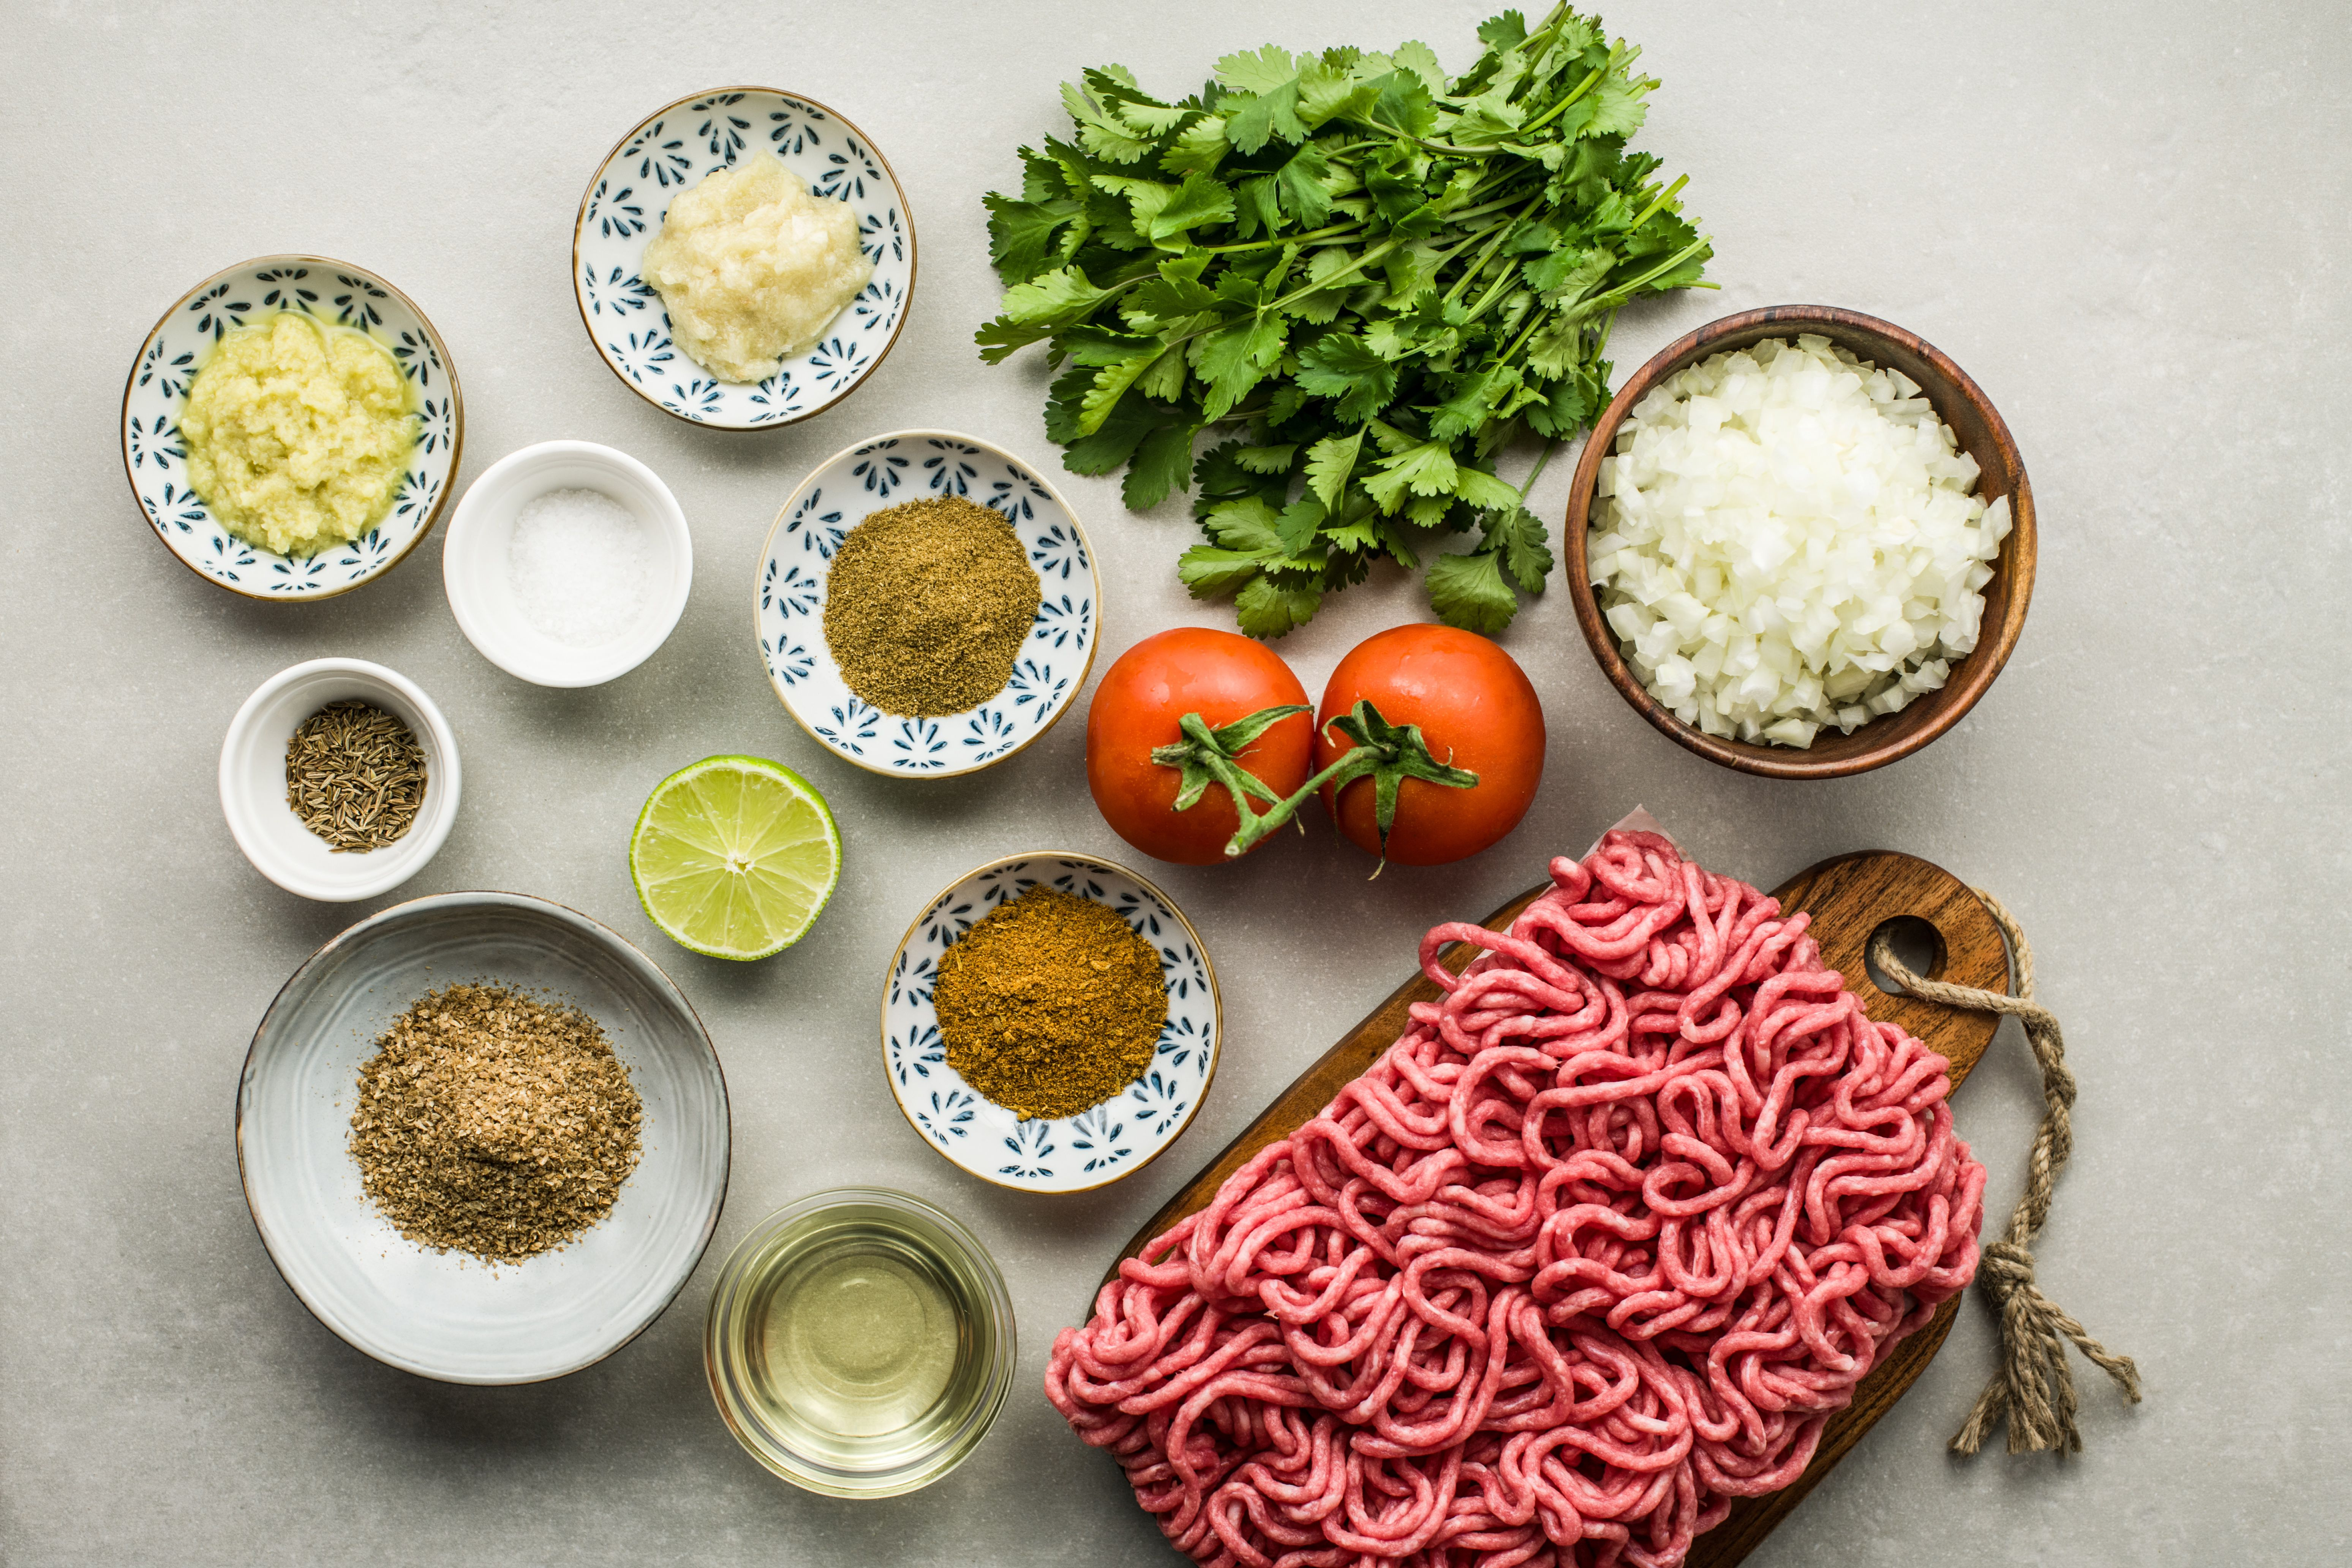 Ingredients for masala kheema dry spicy minced meat